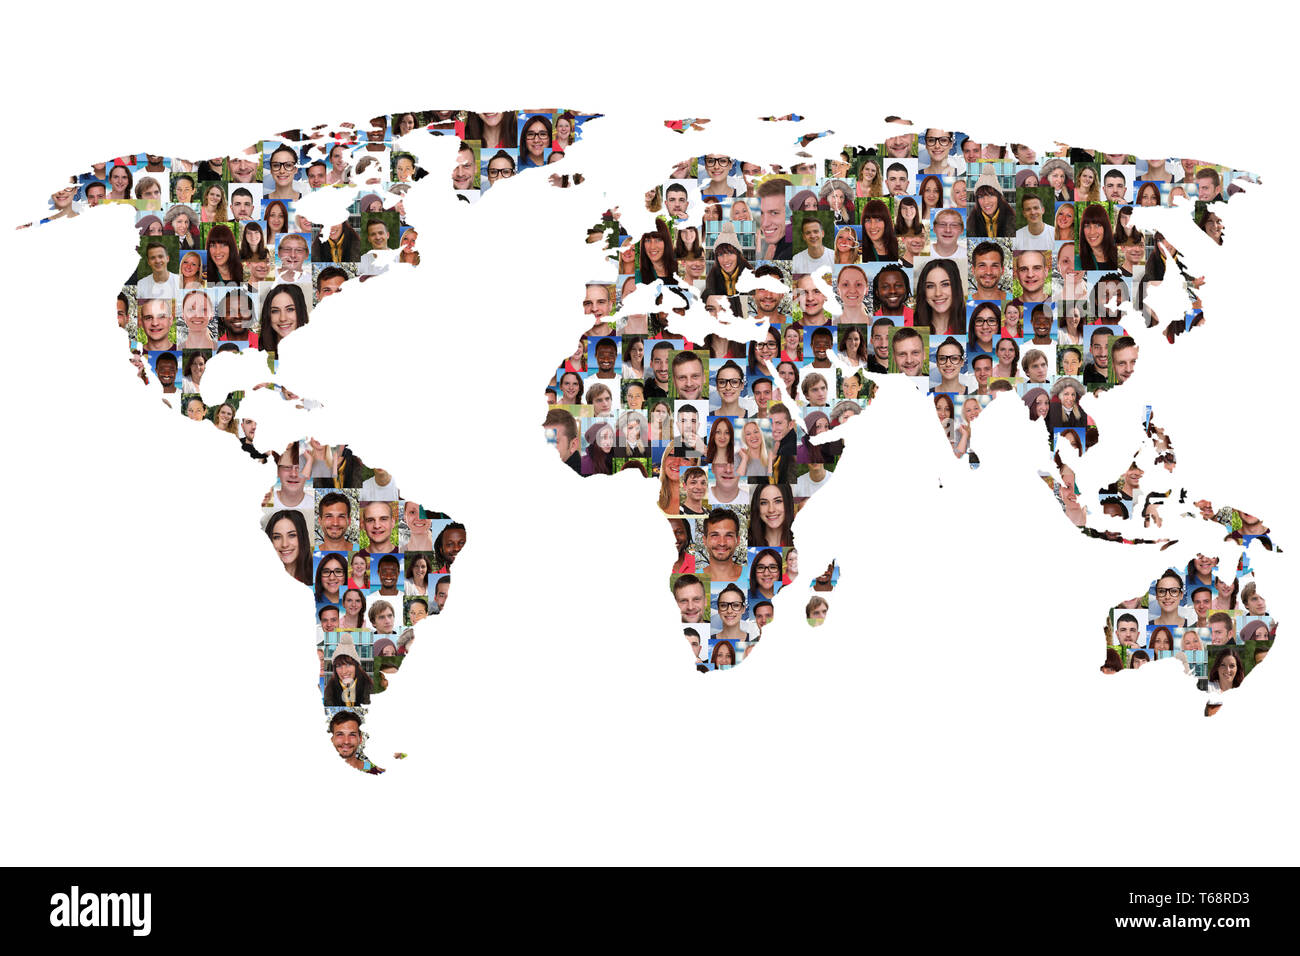 Multicultural Teenager Group Symbol Photo - Stock Image